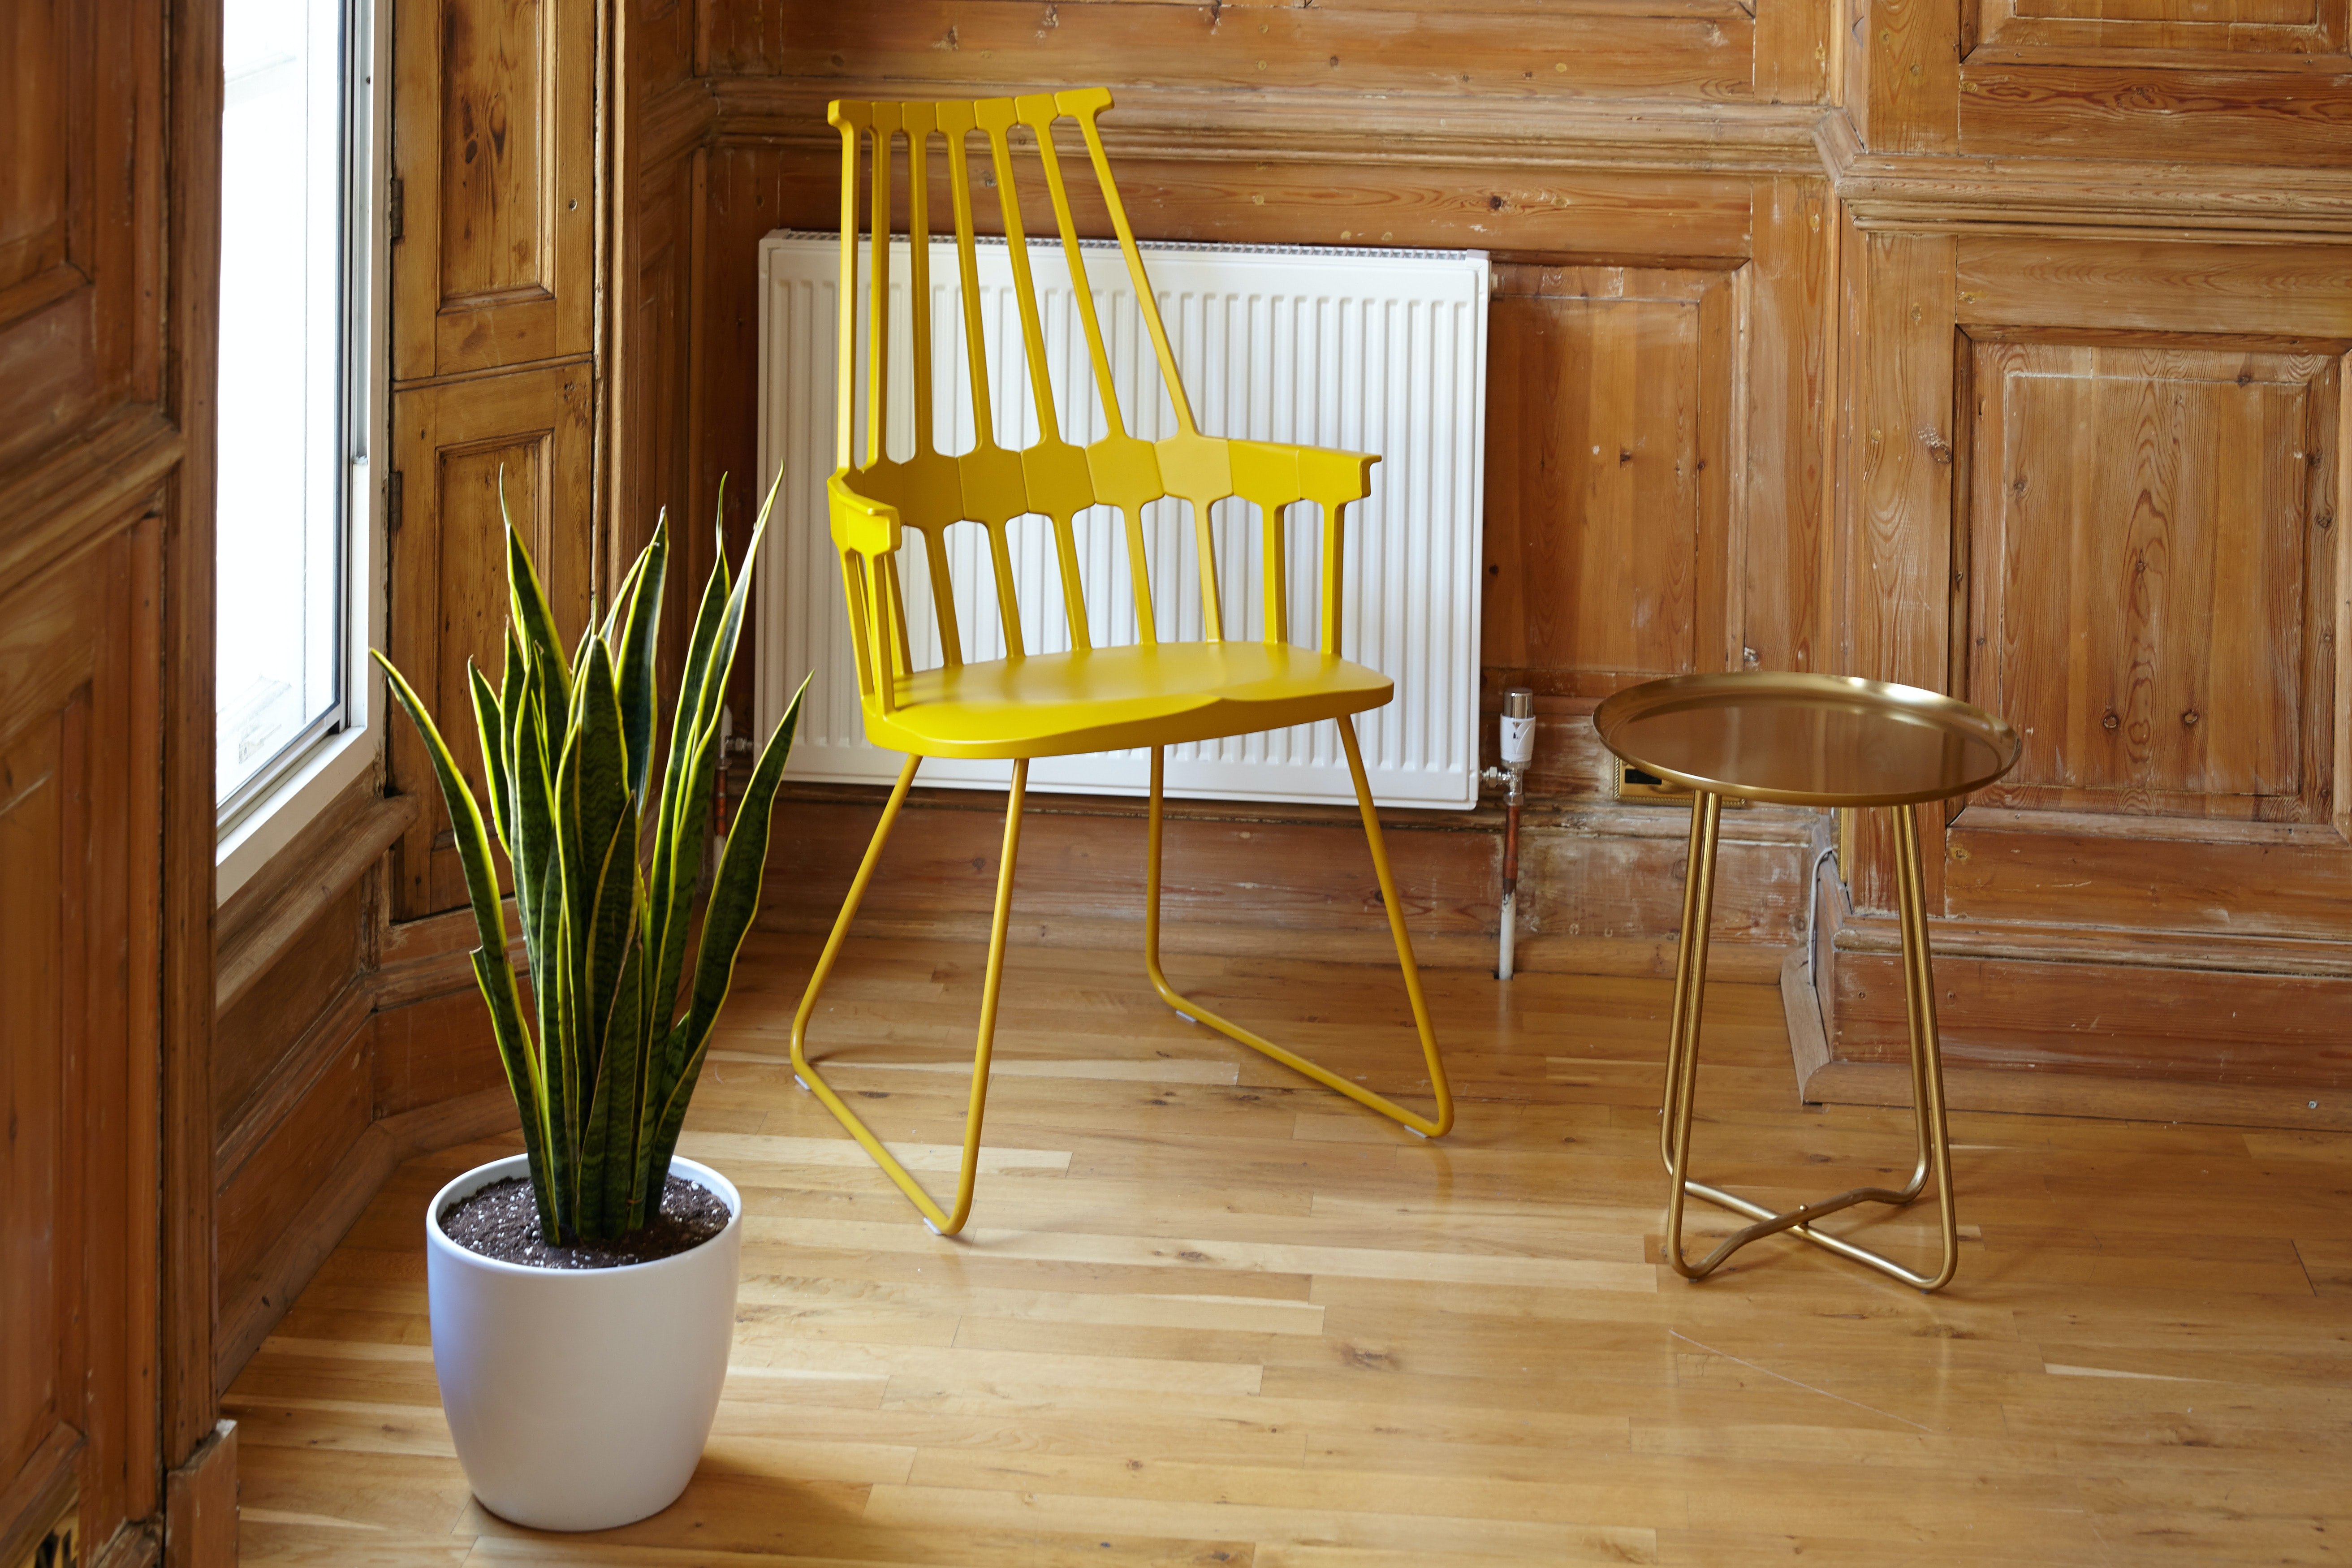 A wooden room with a yellow metal chair, white potted plant, and gold end table in it at 15A Hanover St